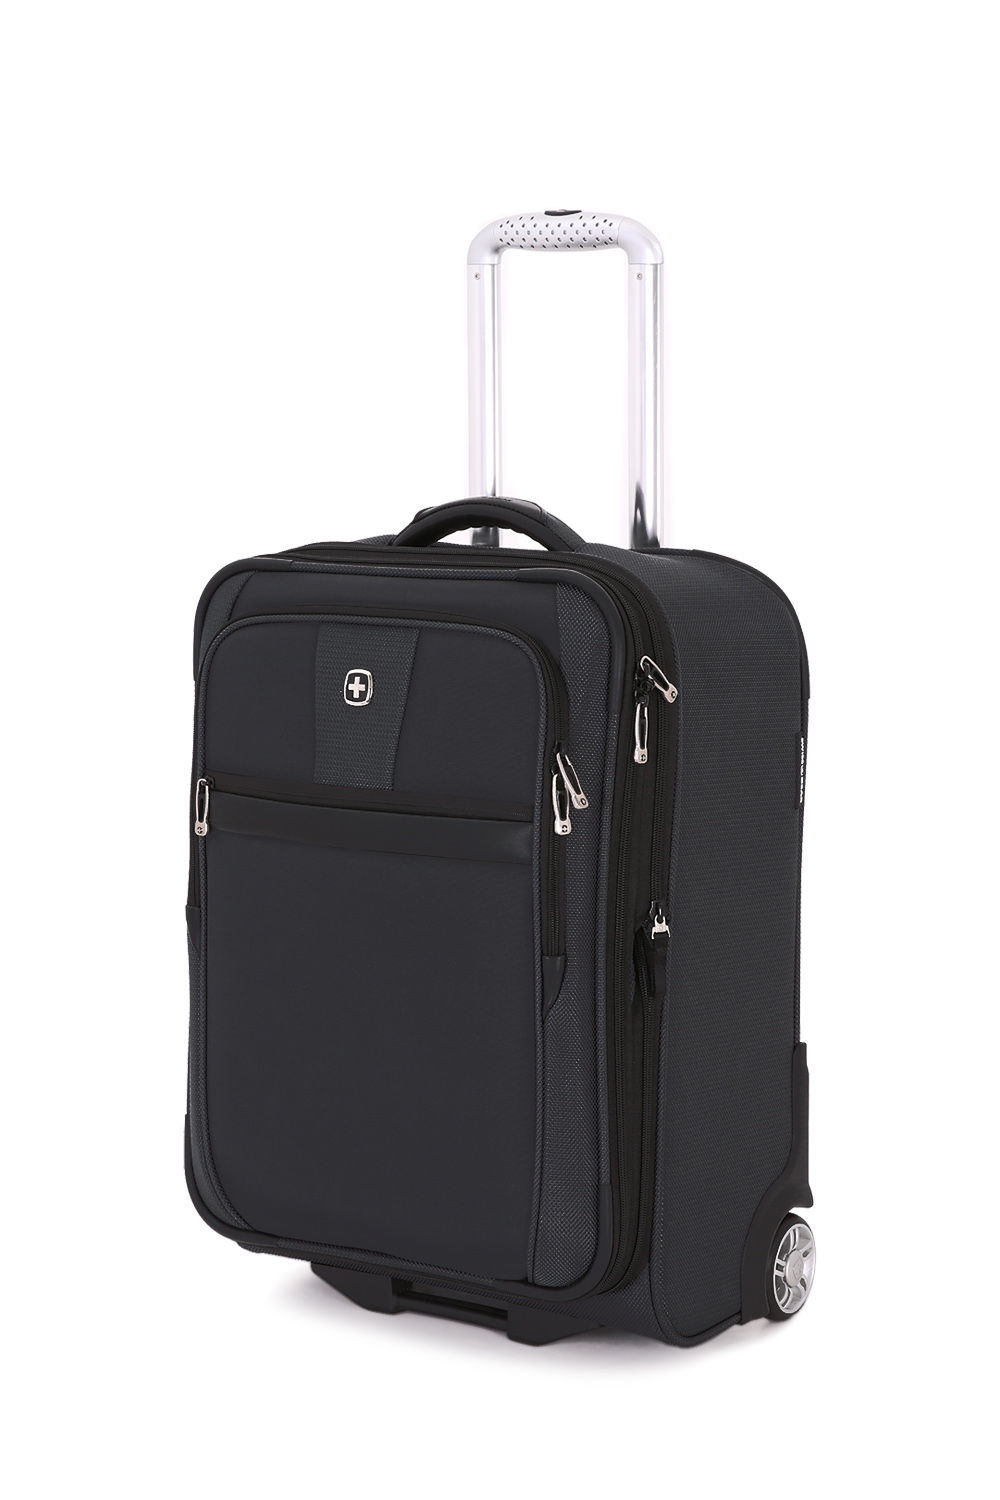 6369 20 inch 2 Wheel Expandable Upright – Black